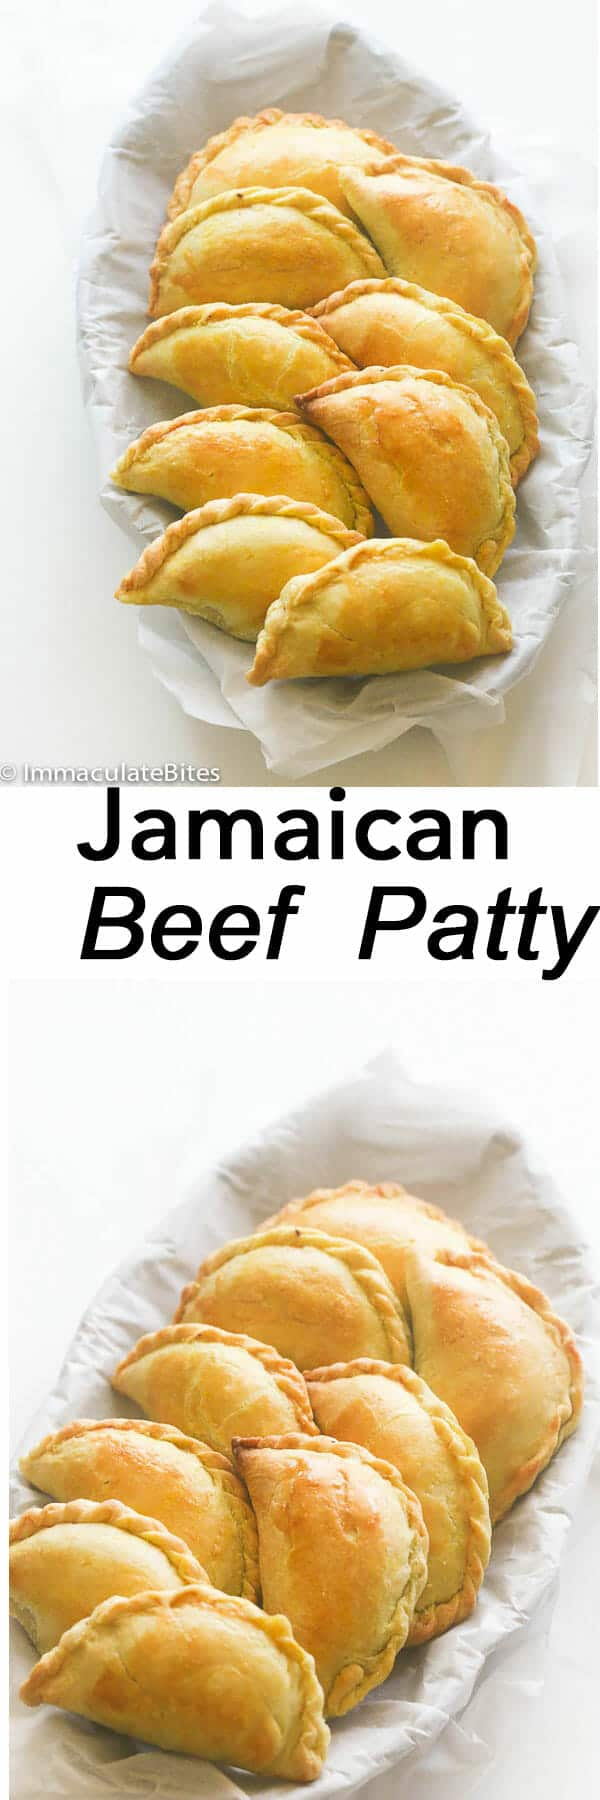 jamaican-beef-patty